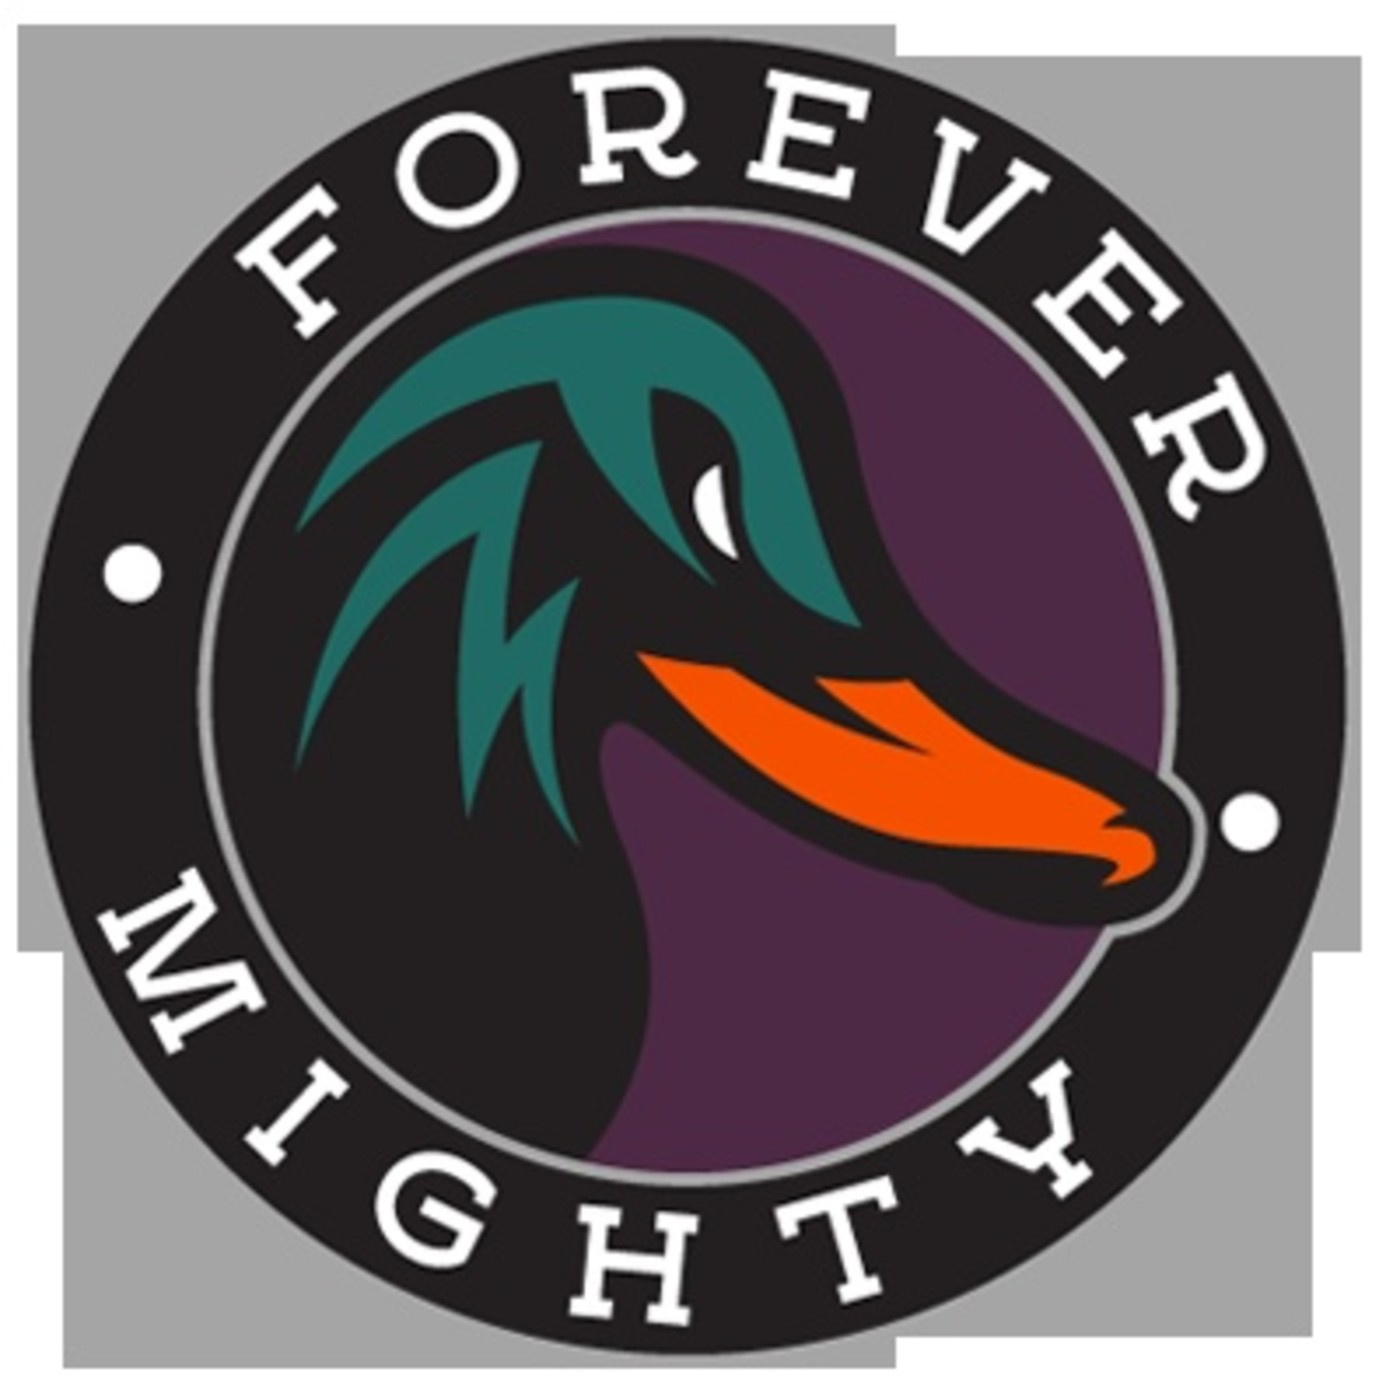 Forever Mighty Podcast - Tis' The Season - Dec. 24, 2019